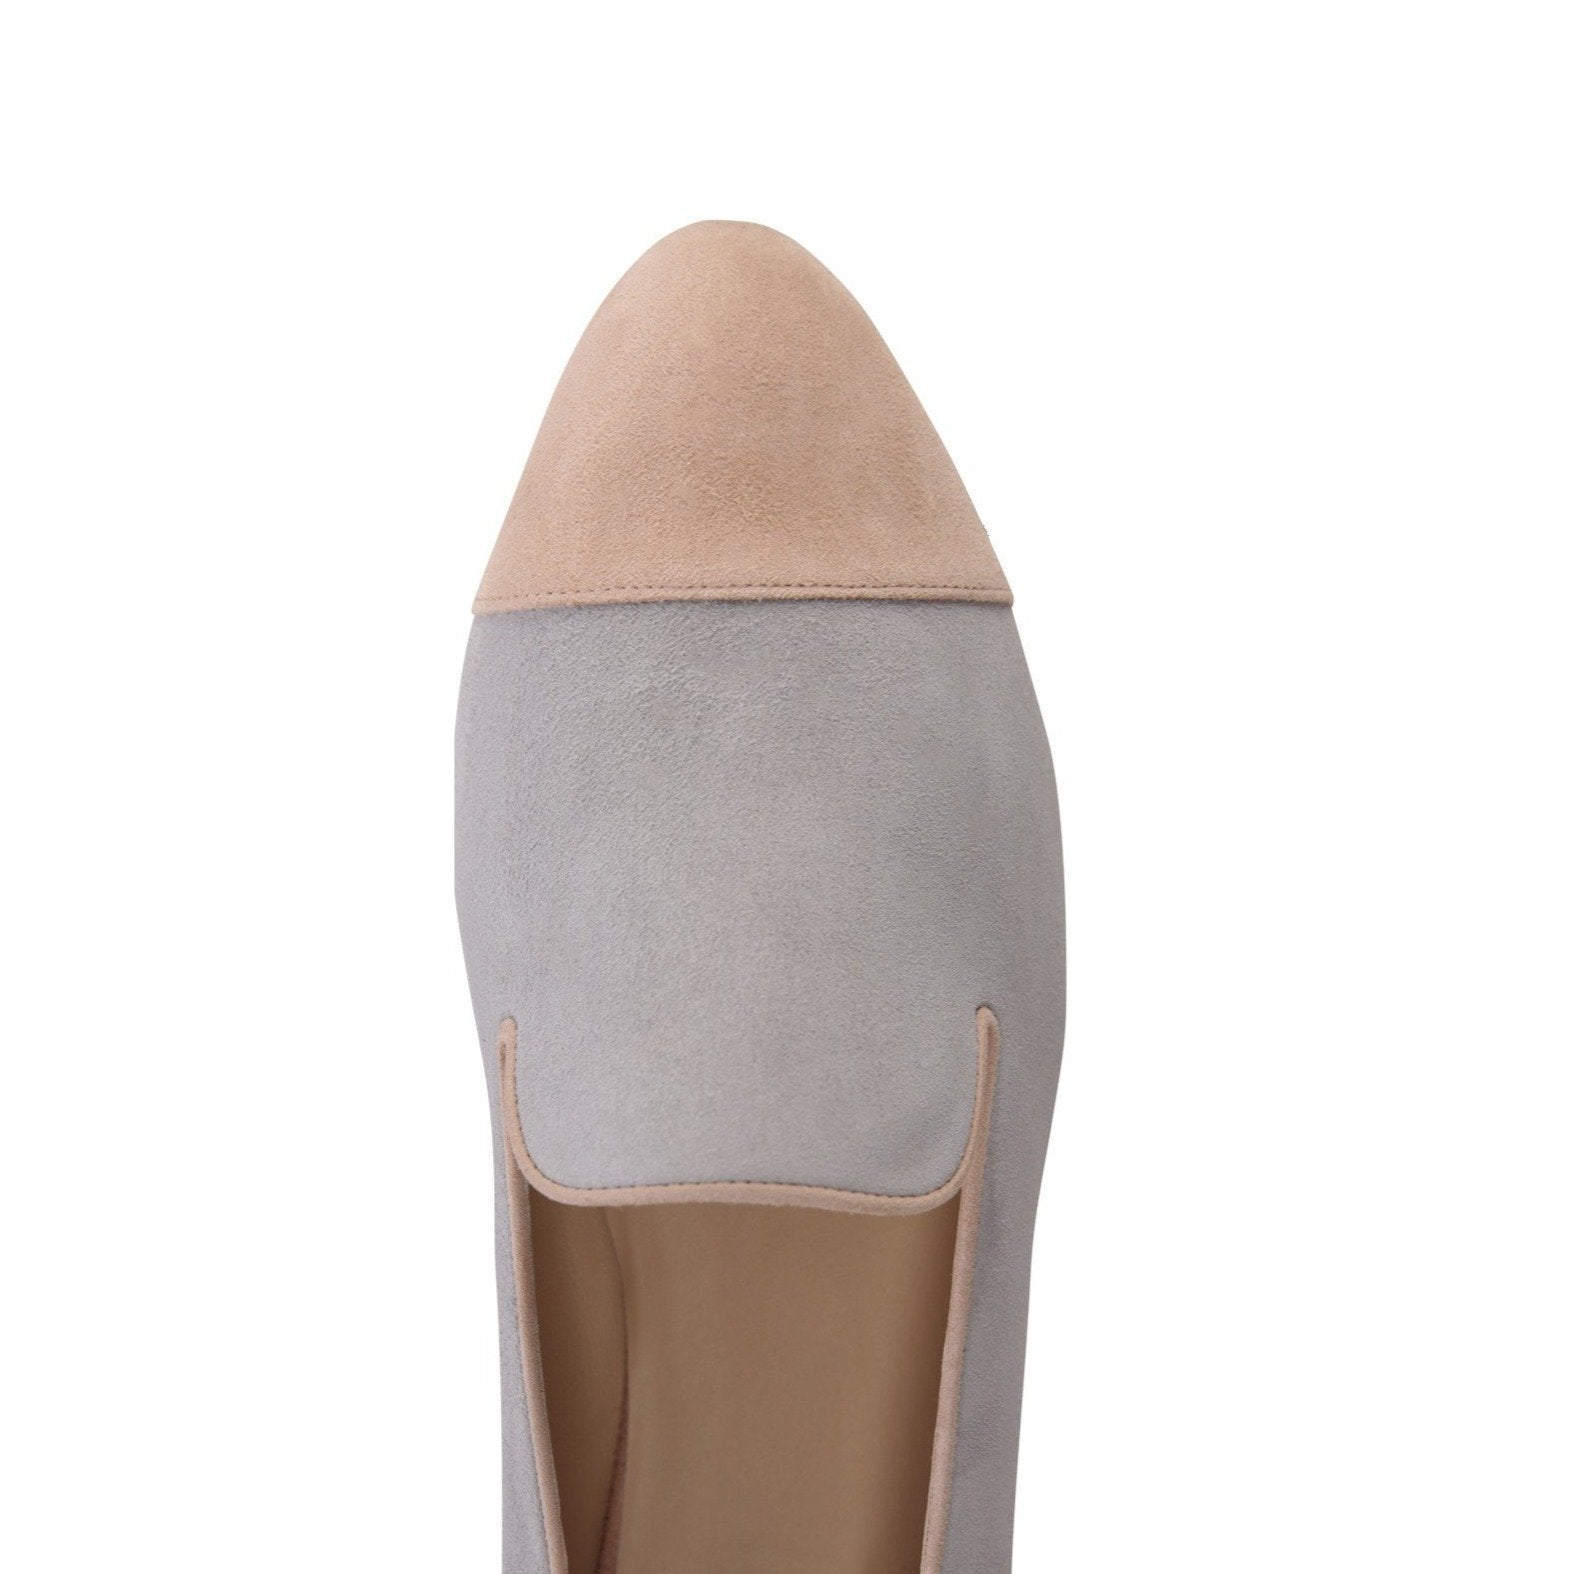 RAVENNA - Velukid Grigio + Sand, VIAJIYU - Women's Hand Made Sustainable Luxury Shoes. Made in Italy. Made to Order.